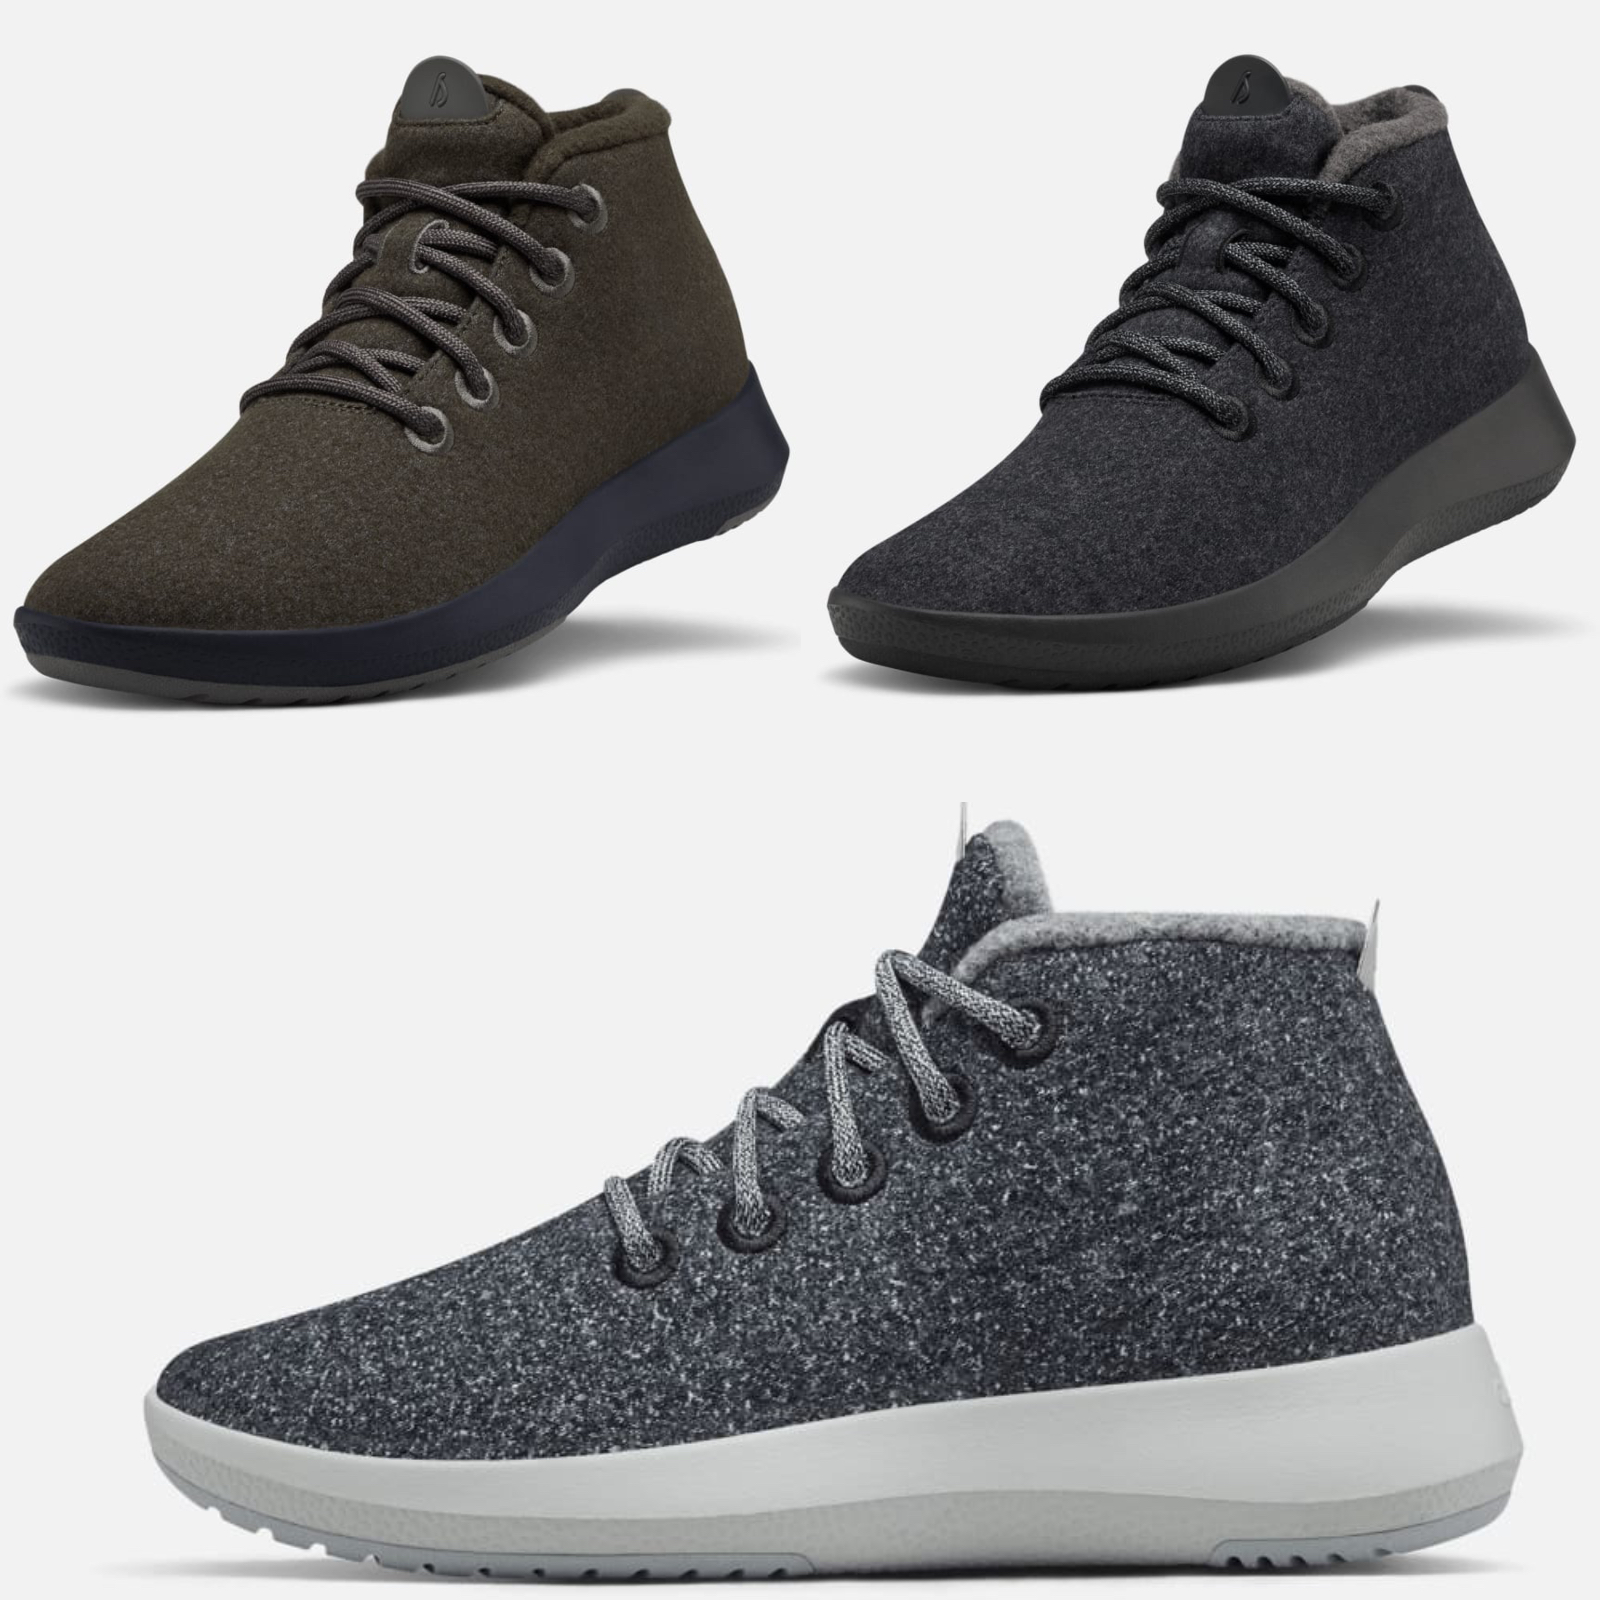 Allbirds Wool Runner-up Mizzles